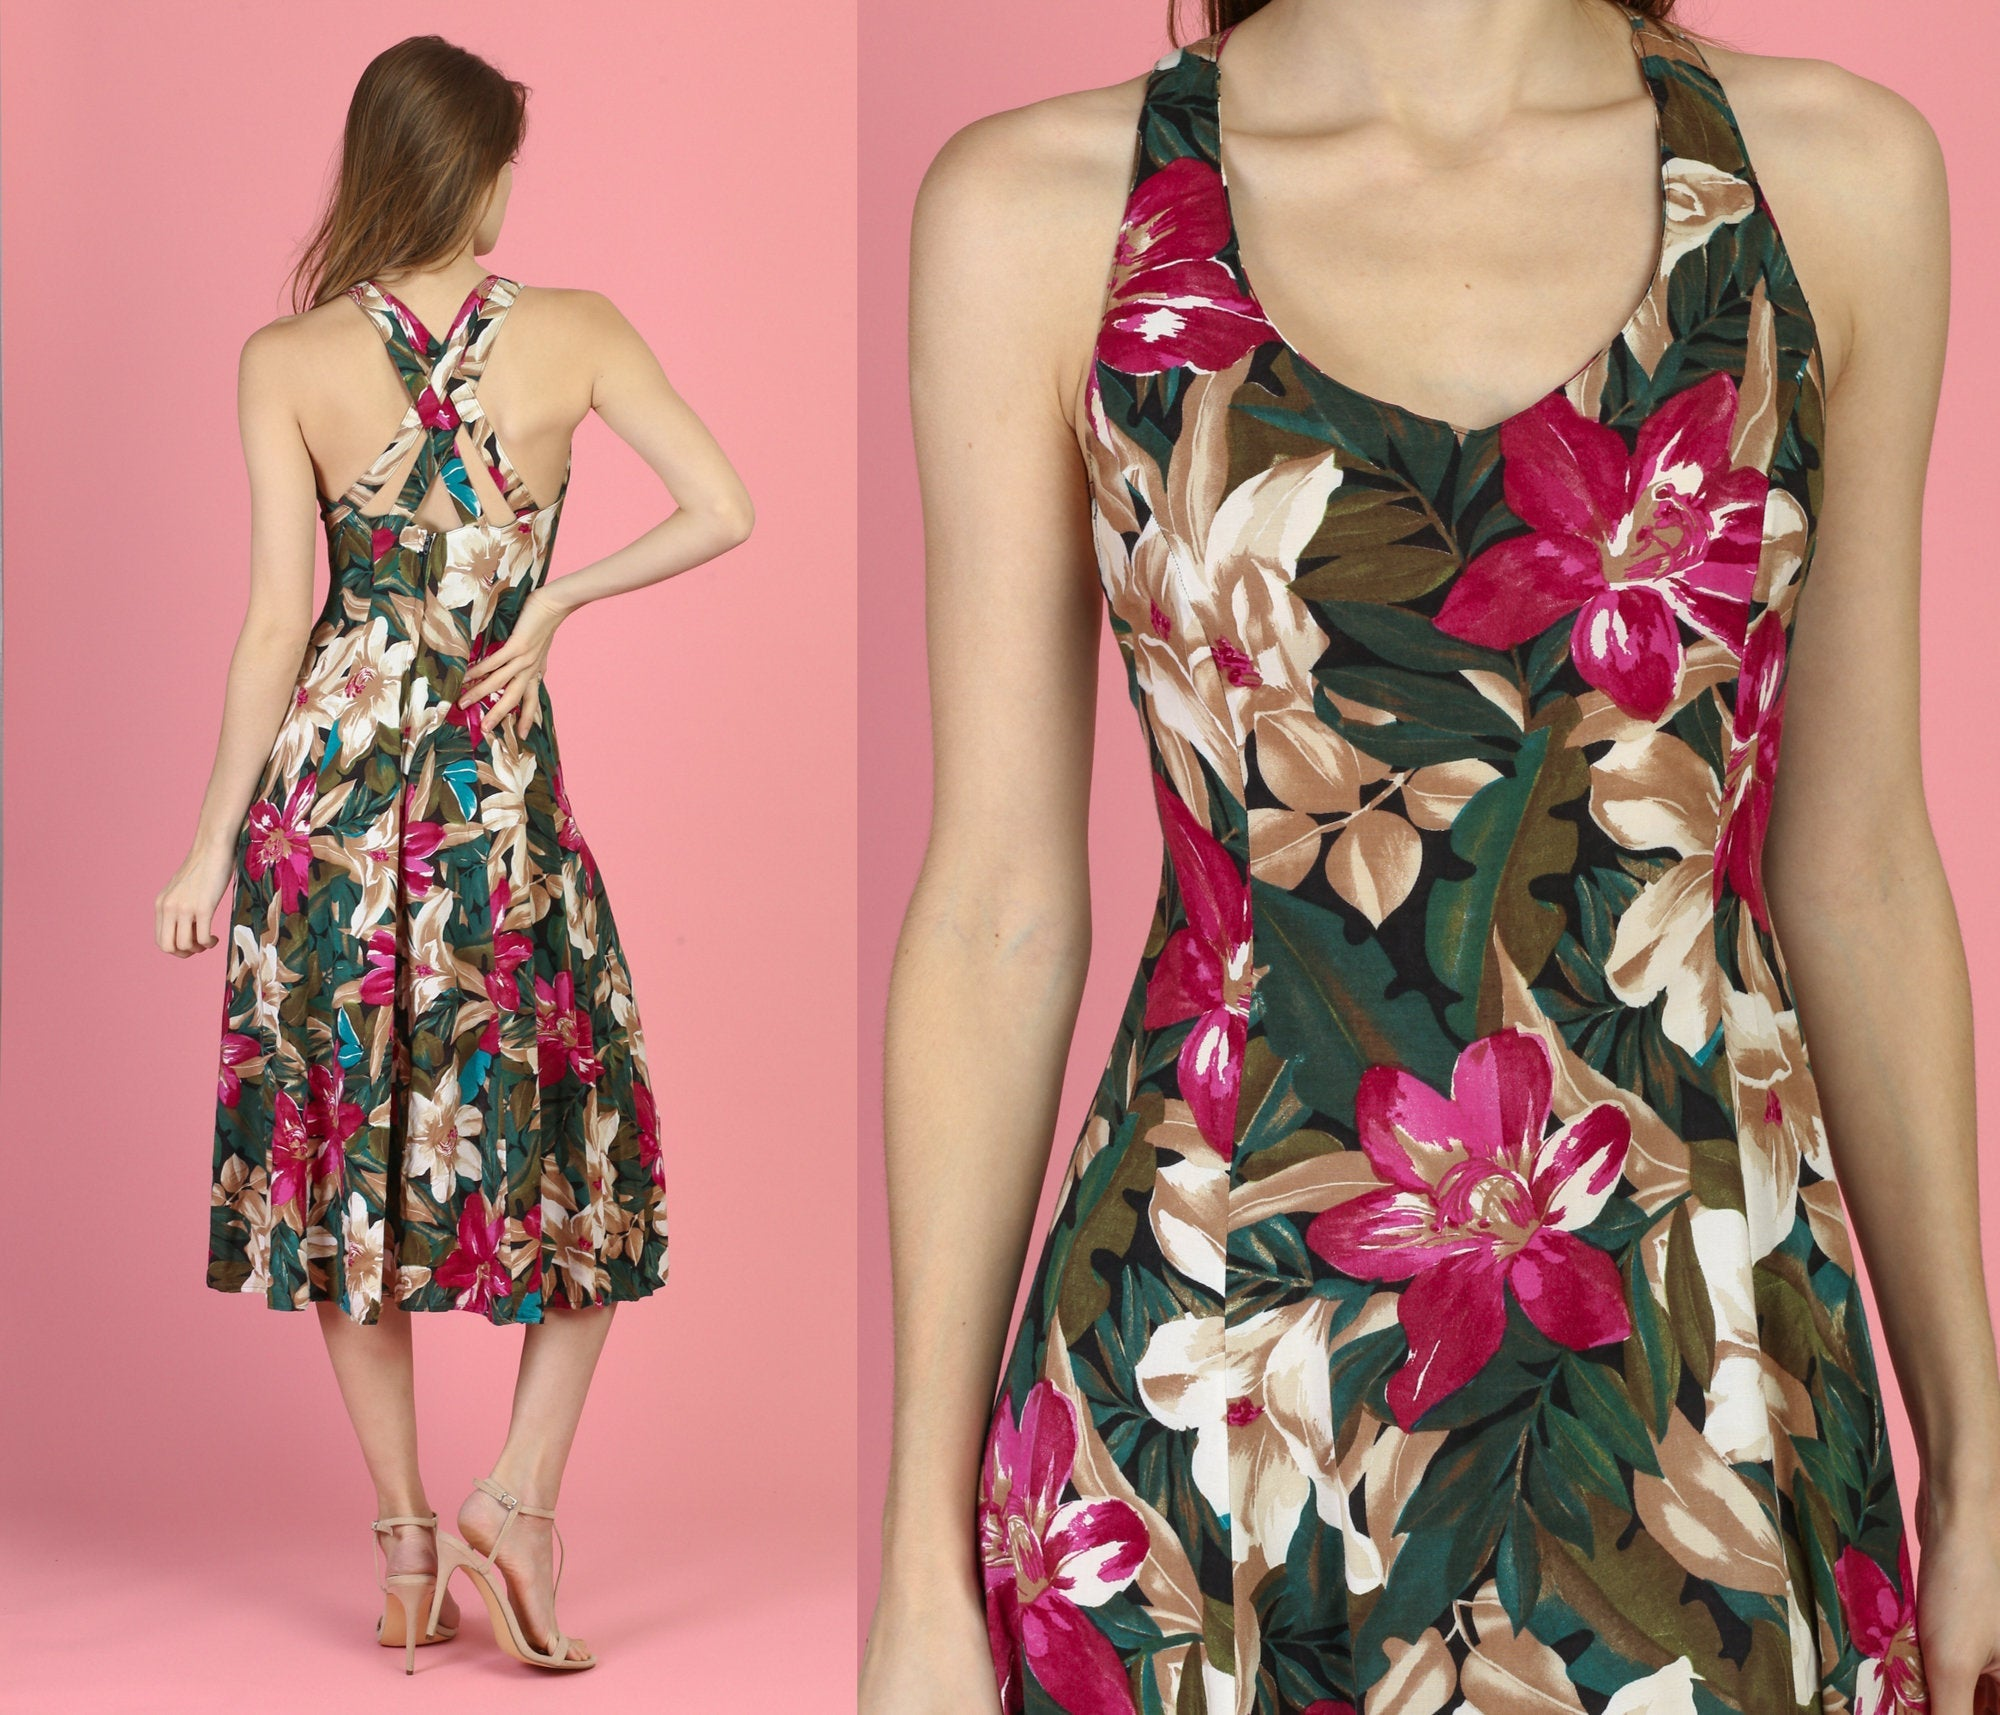 90s Cross Back Floral Sundress - XS to Small